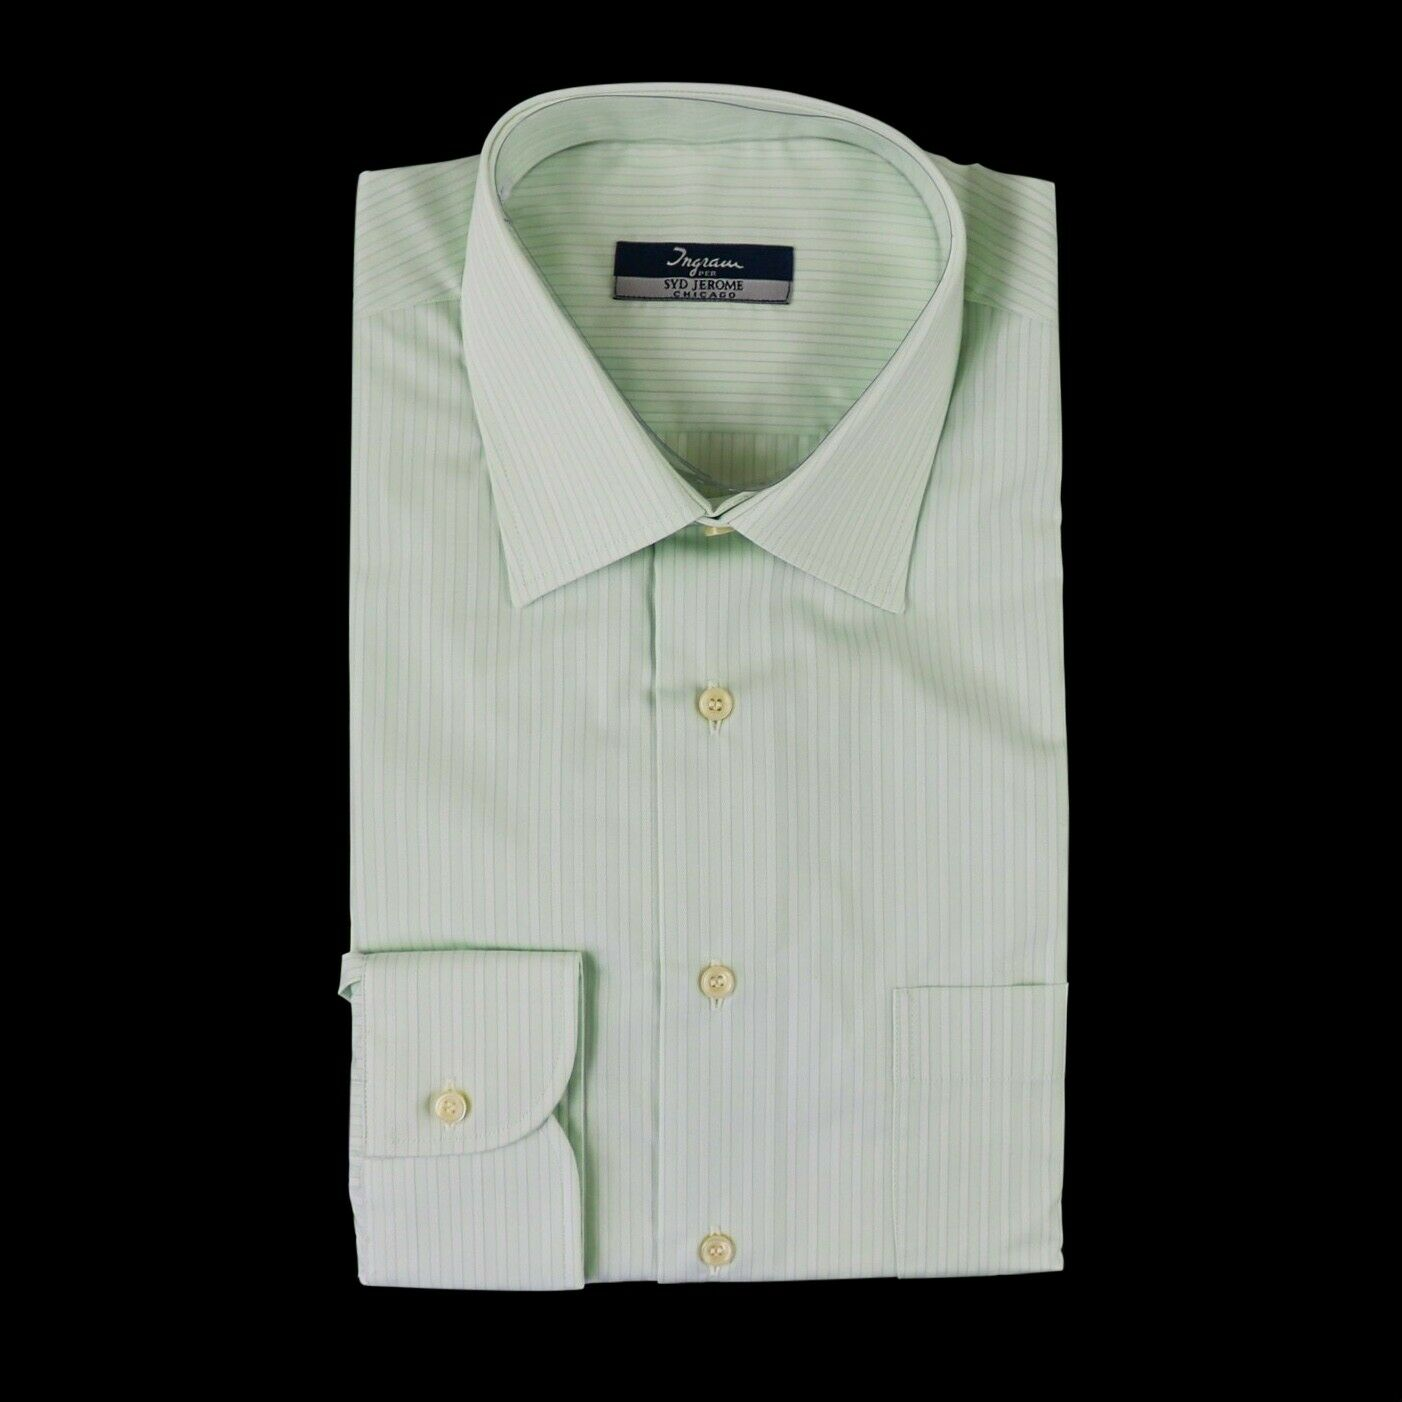 New INGRAM Pale Green Striped 100% Cotton Made in  Dress Shirt 16.5 42